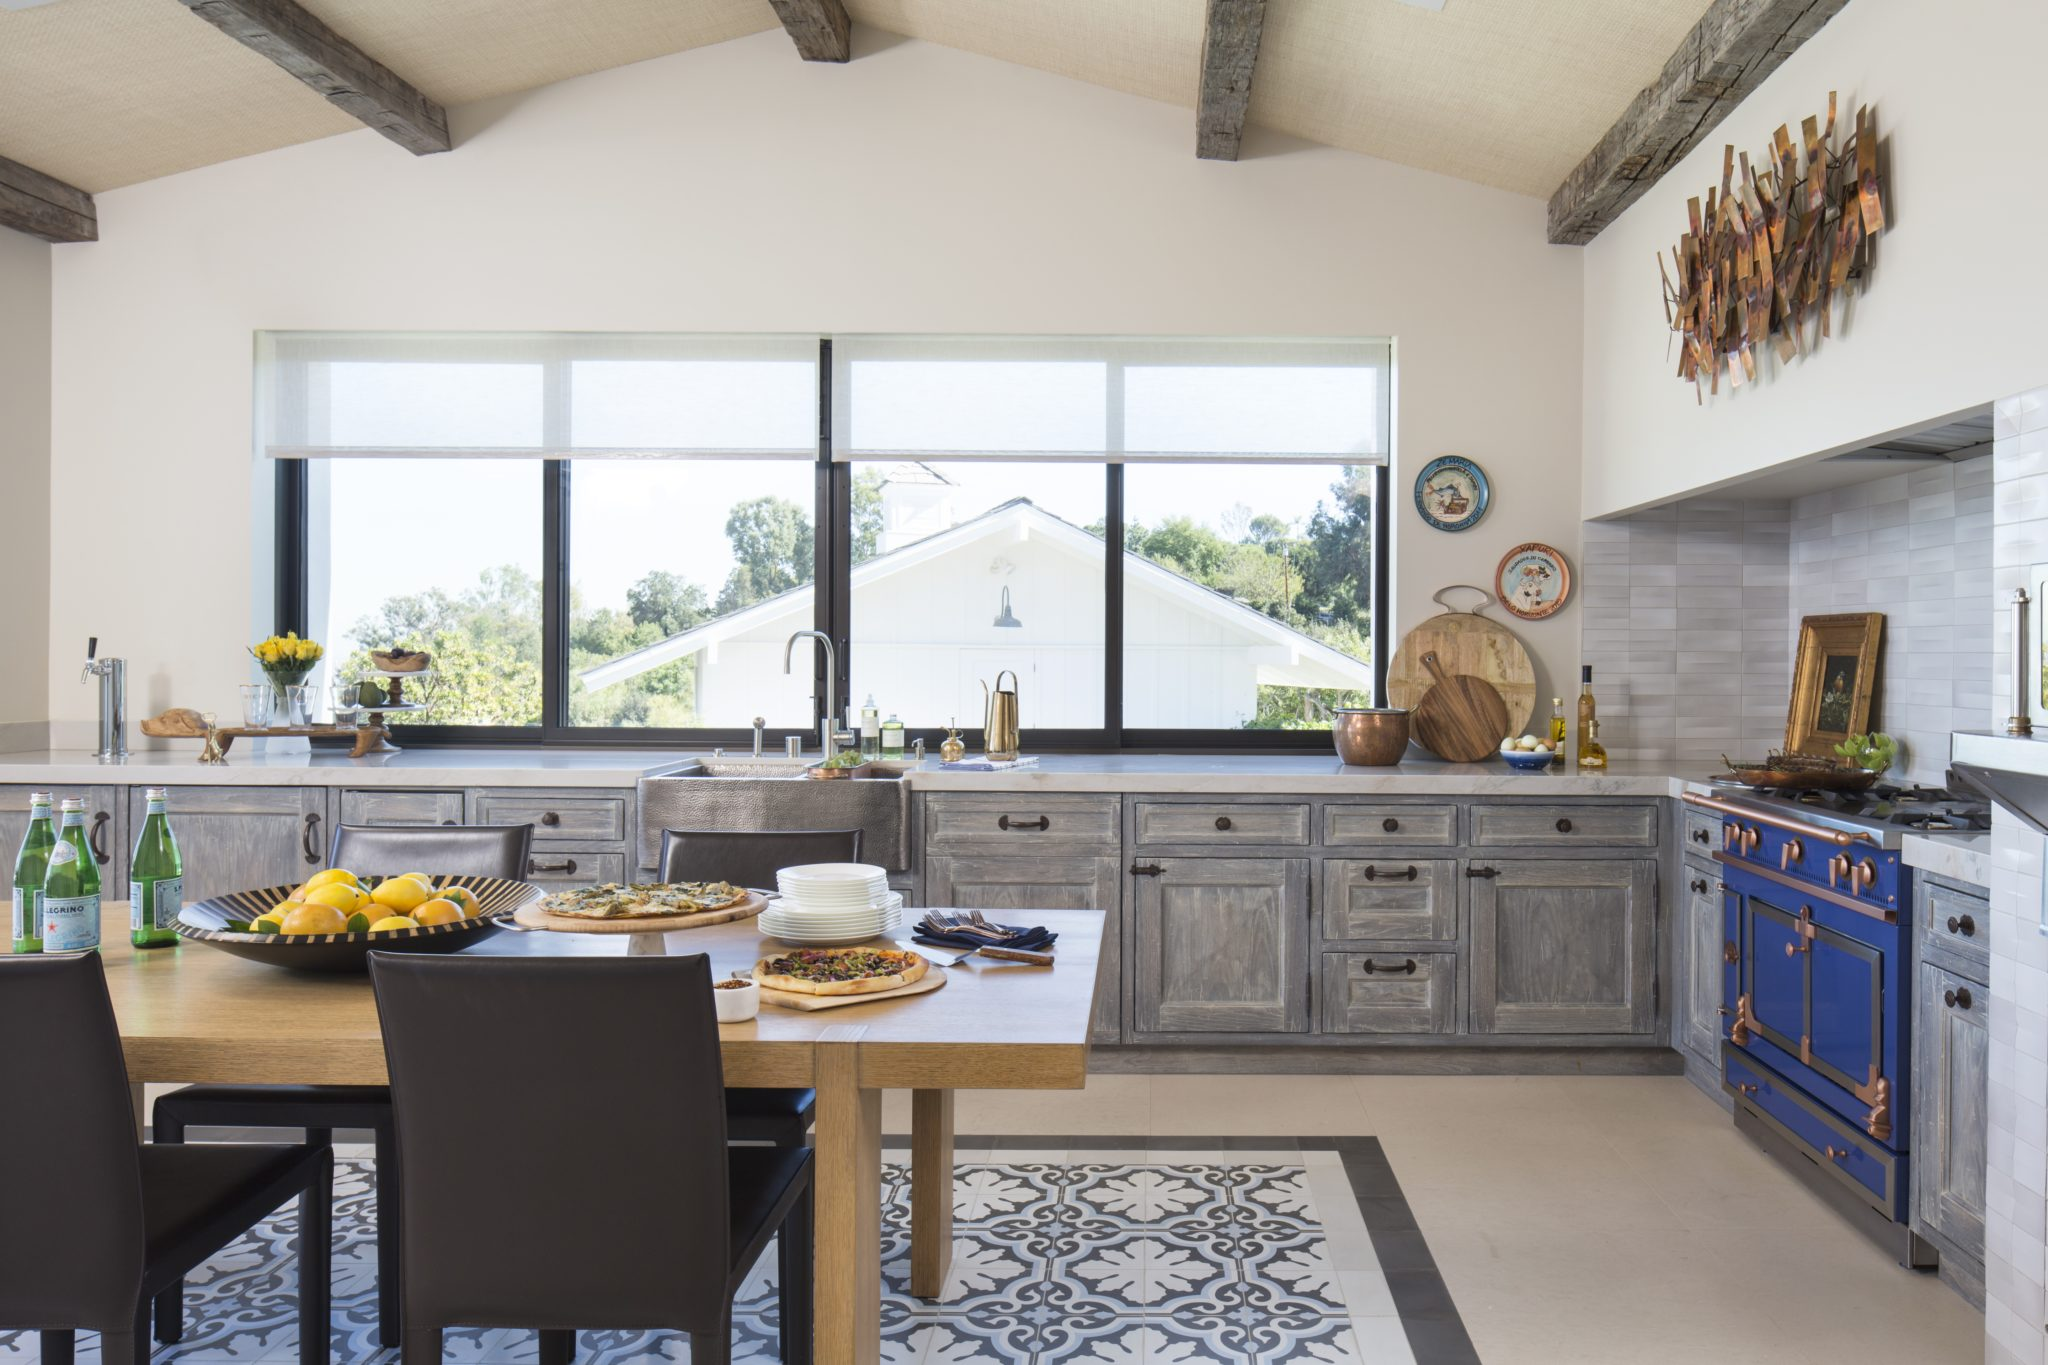 Indoor outdoor kitchen, exposed beams with blue La Cornue and inset tile floor. By Cooper Pacific Kitchens